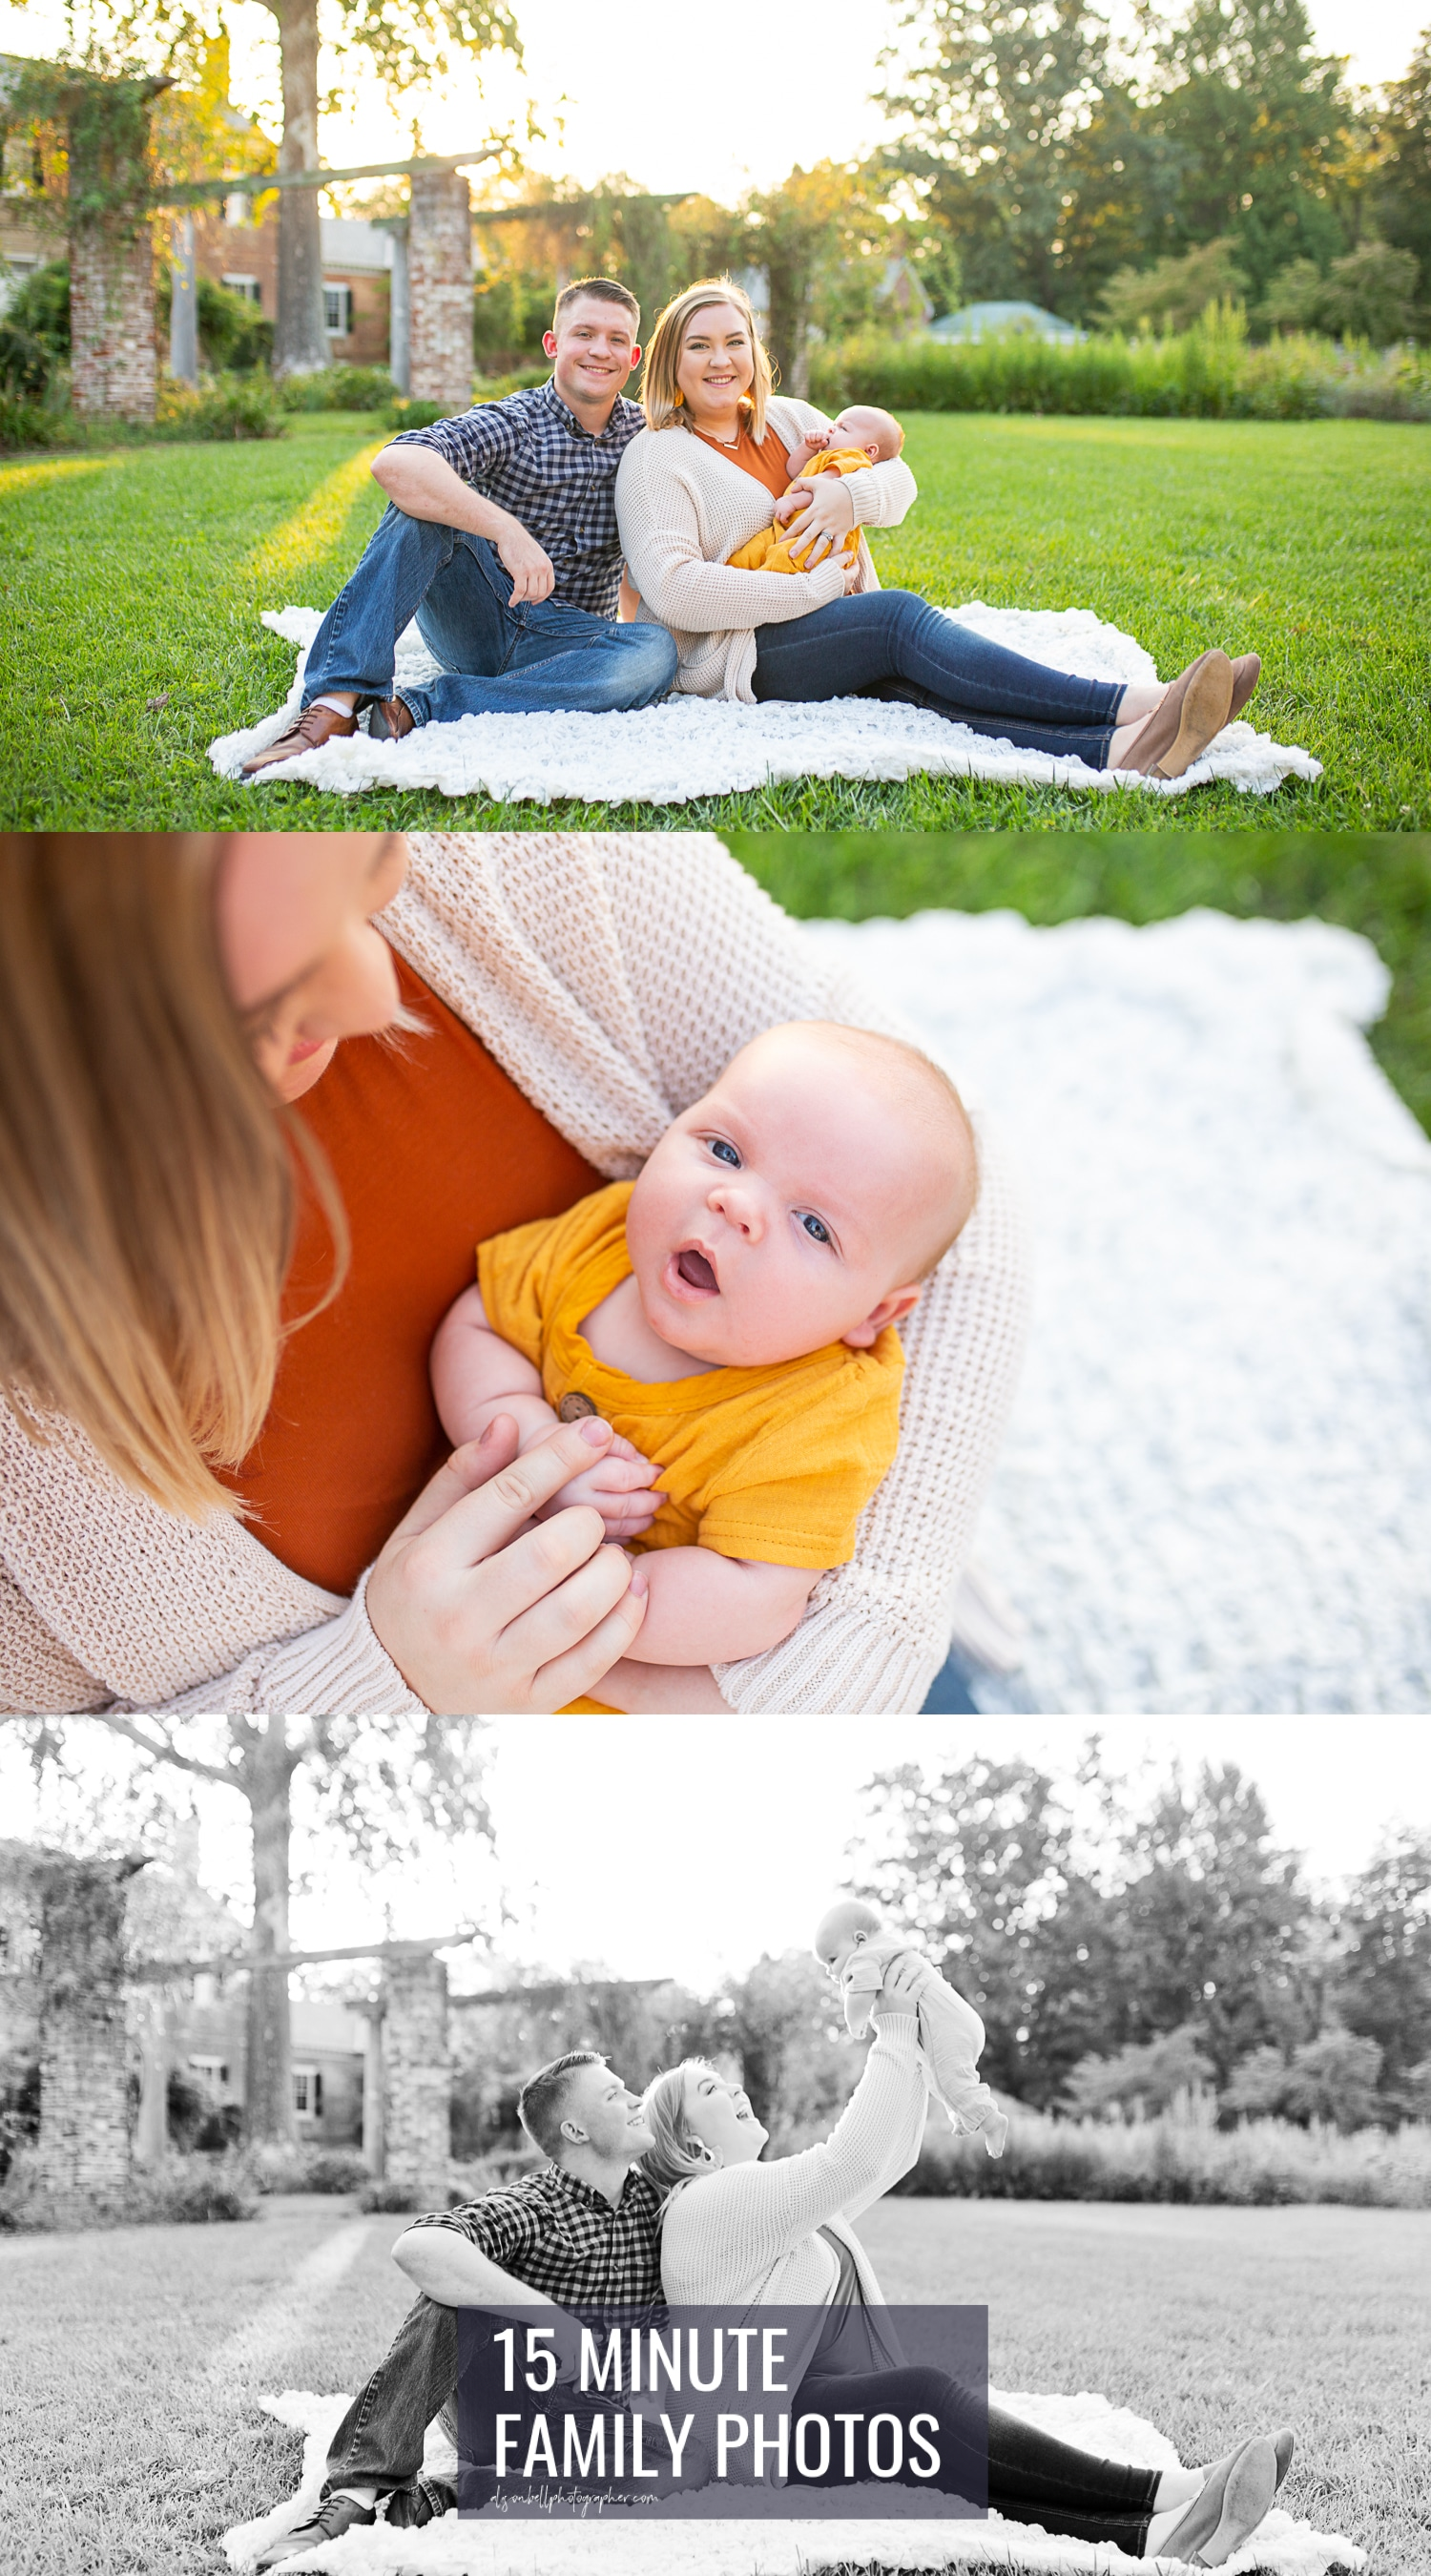 Half price family mini sessions at Chatham Manor in Fredericksburg, VA. Northern Virginia family photographer, Alison Bell. Quantico. Woodbridge, Stafford.